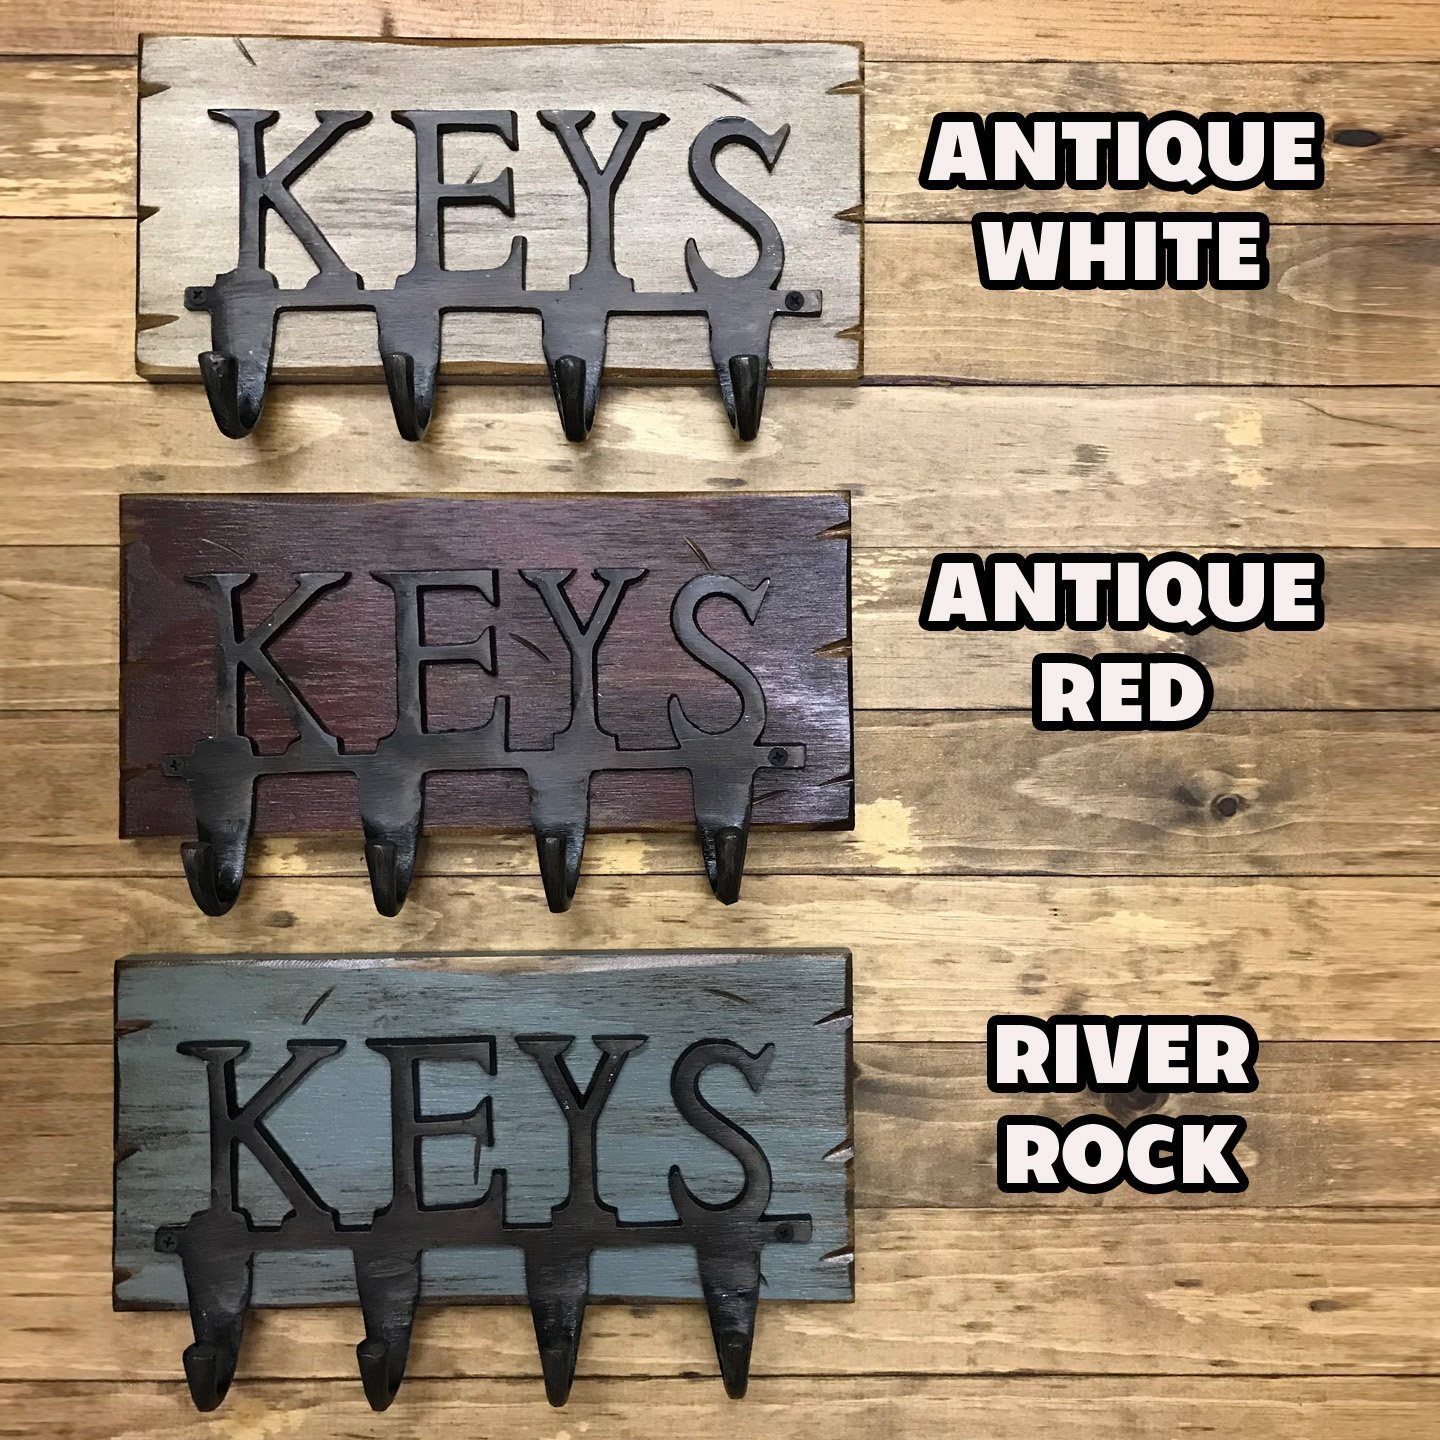 Country Distressed Decor 13 X 7.5 KEY RACK forKEYS *Wall Key Holder *Rustic Wood with Metal KEY Hooks Antique Cream Red White Blue